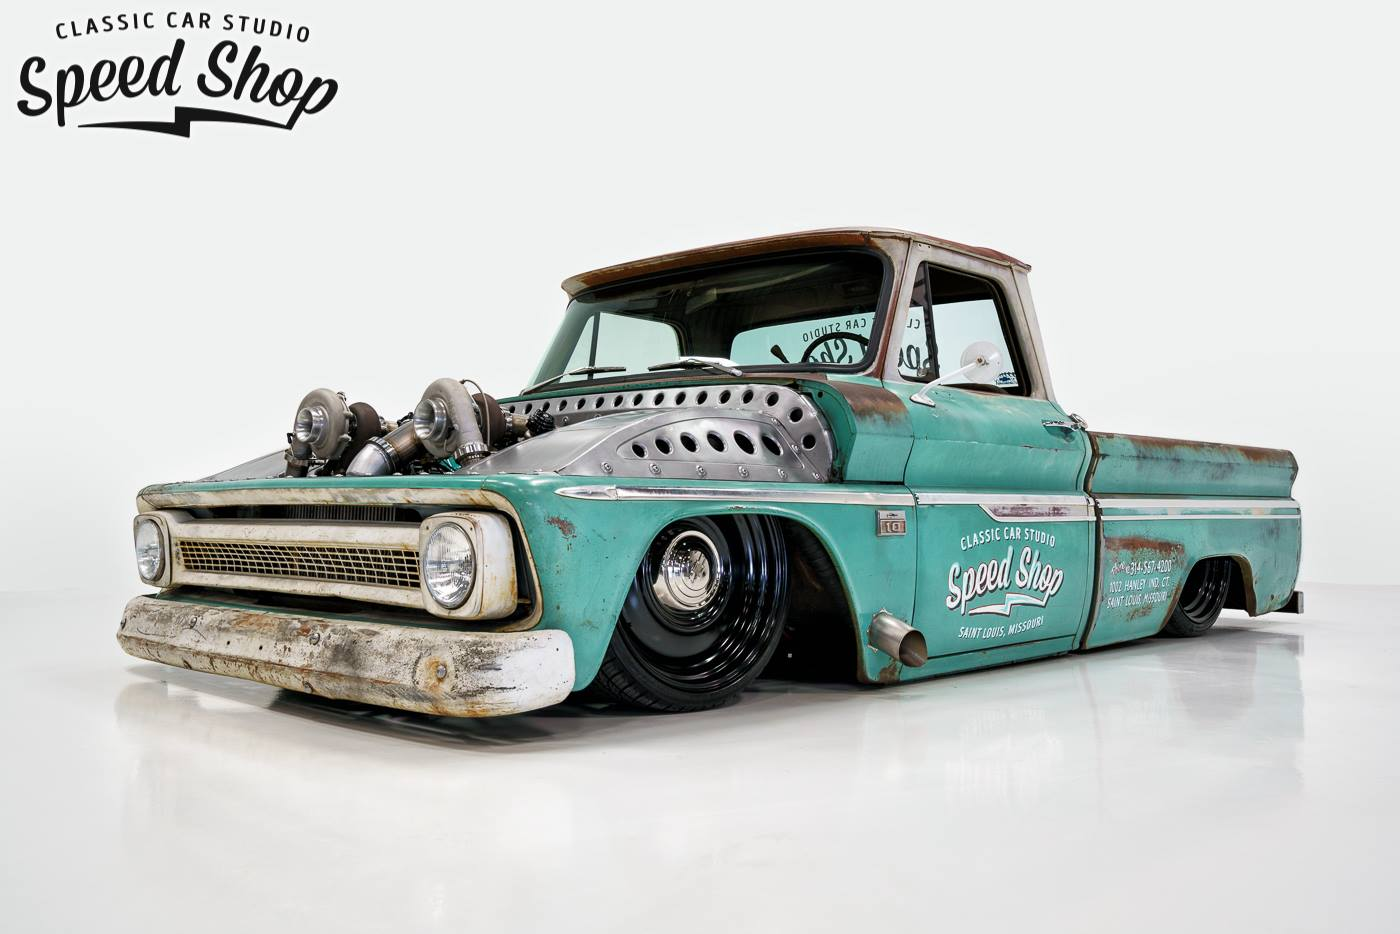 All Chevy chevy c-10 : Chevy C10 with a Twin-turbo LS1 – Engine Swap Depot